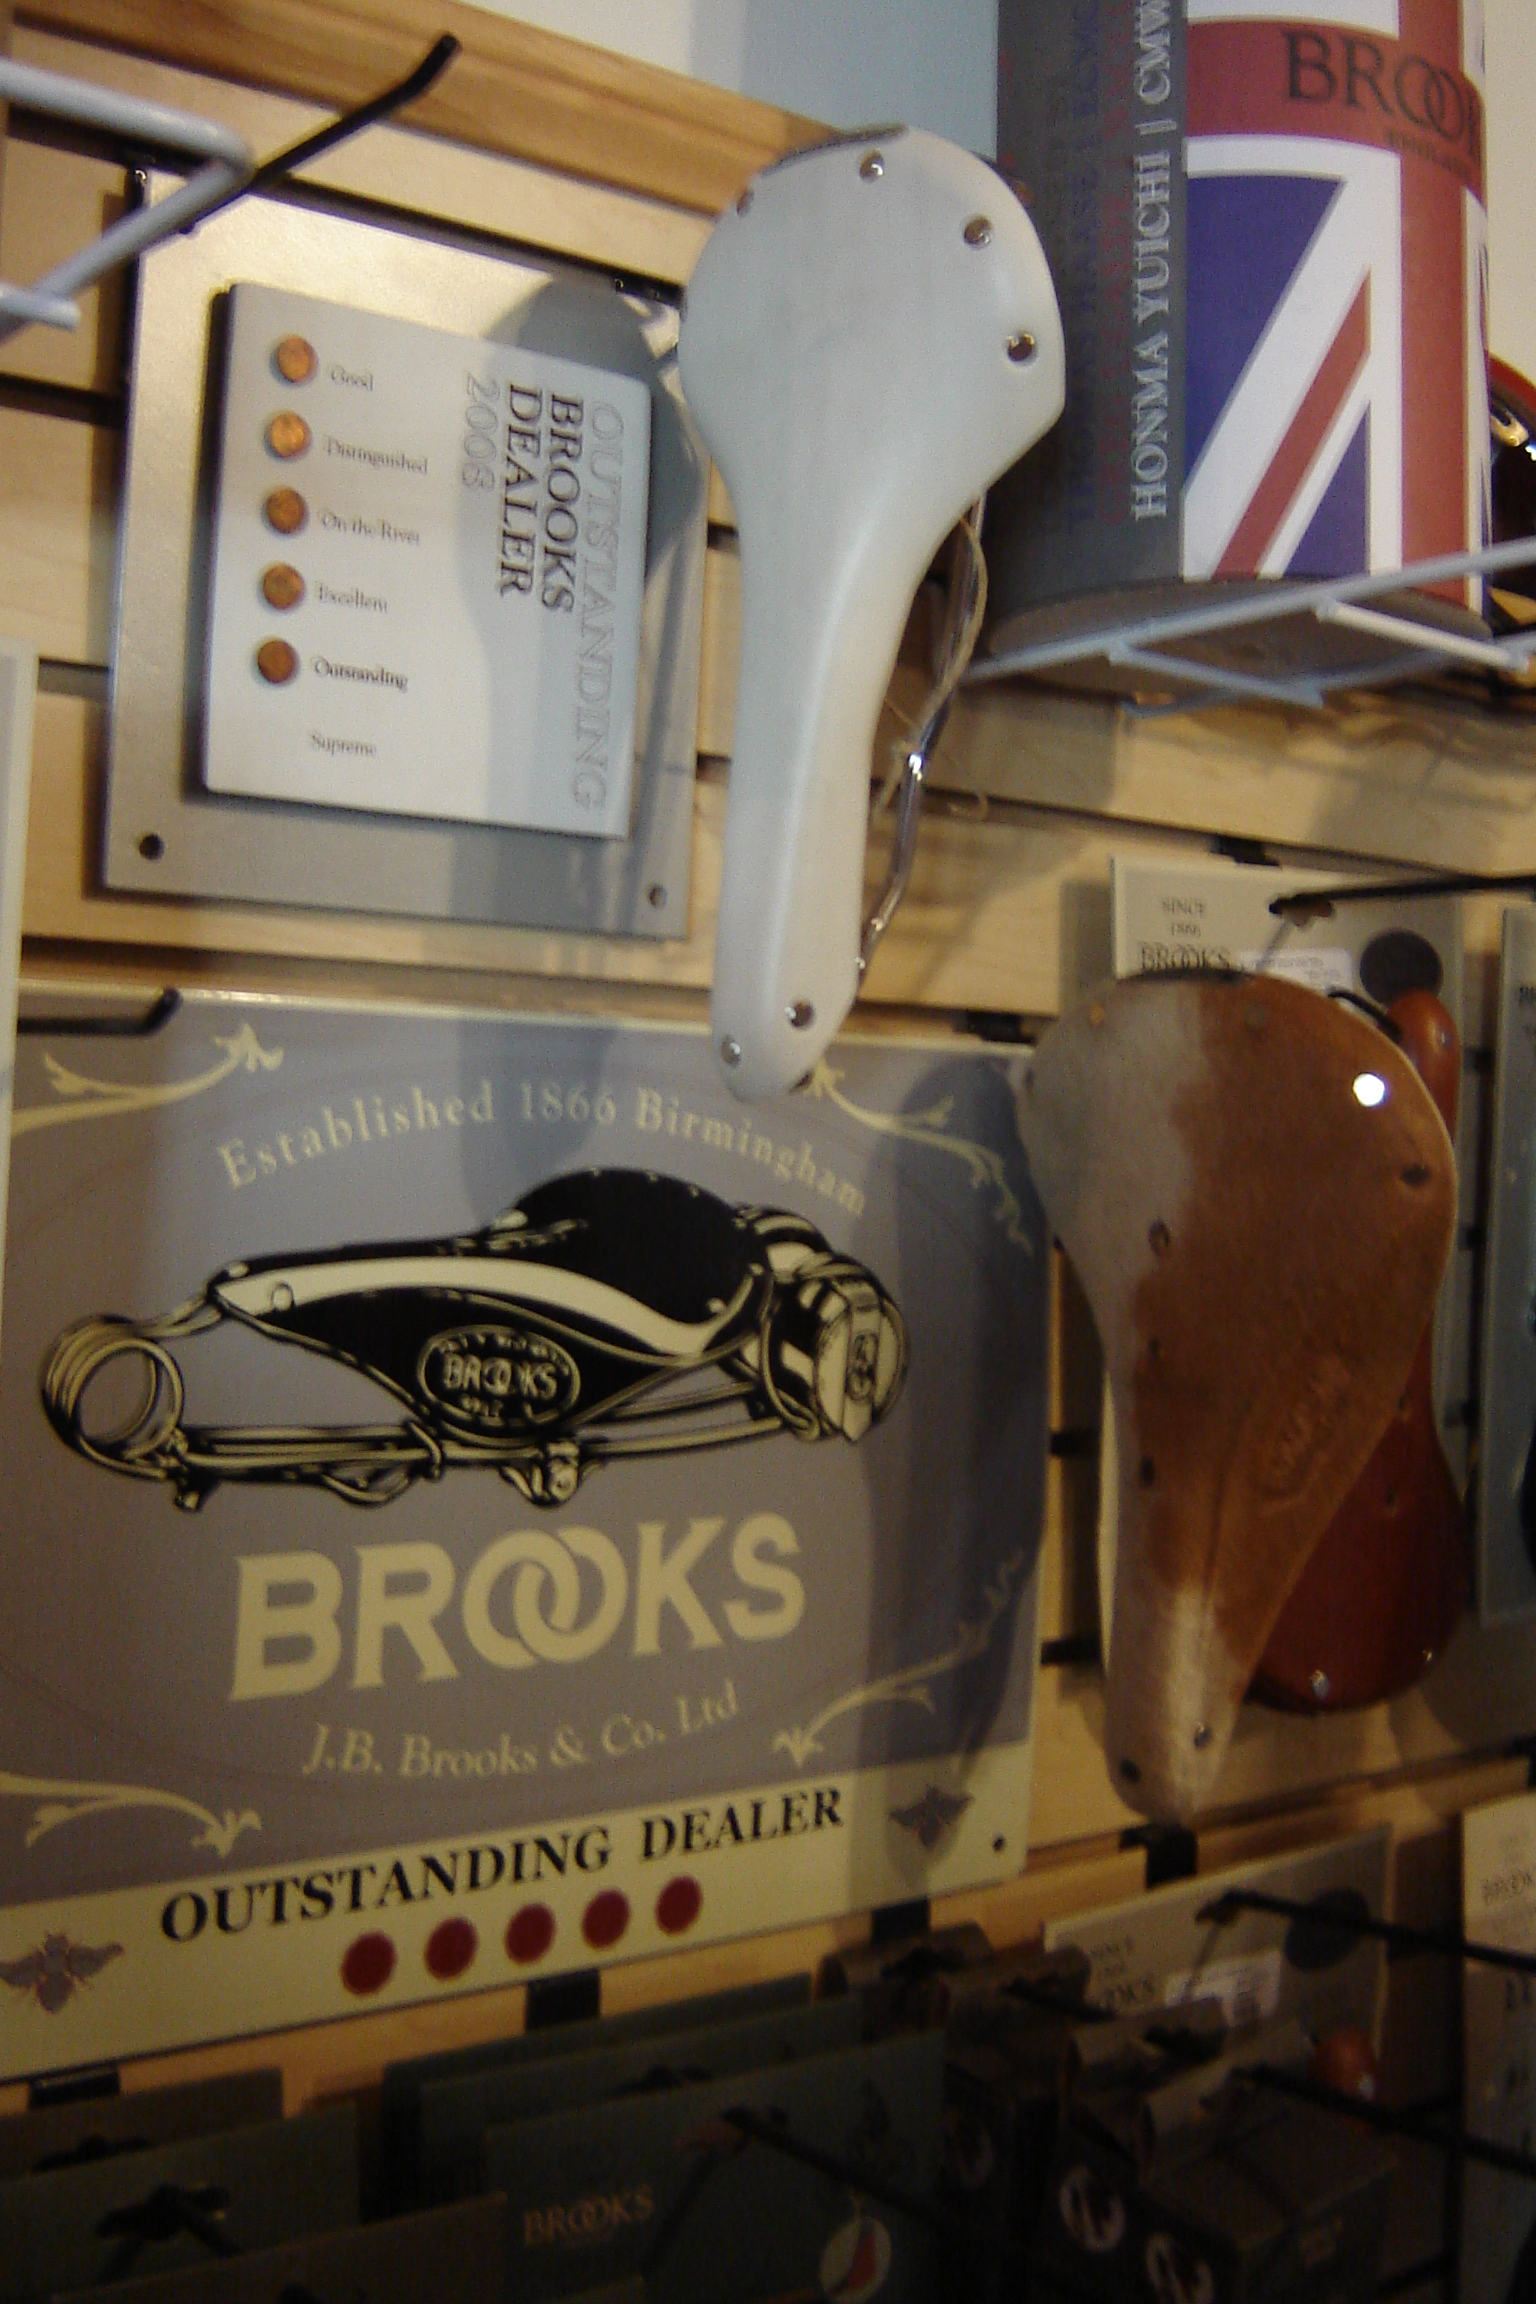 We recieved the Outstanding Shop Brooks Award on Thursday.